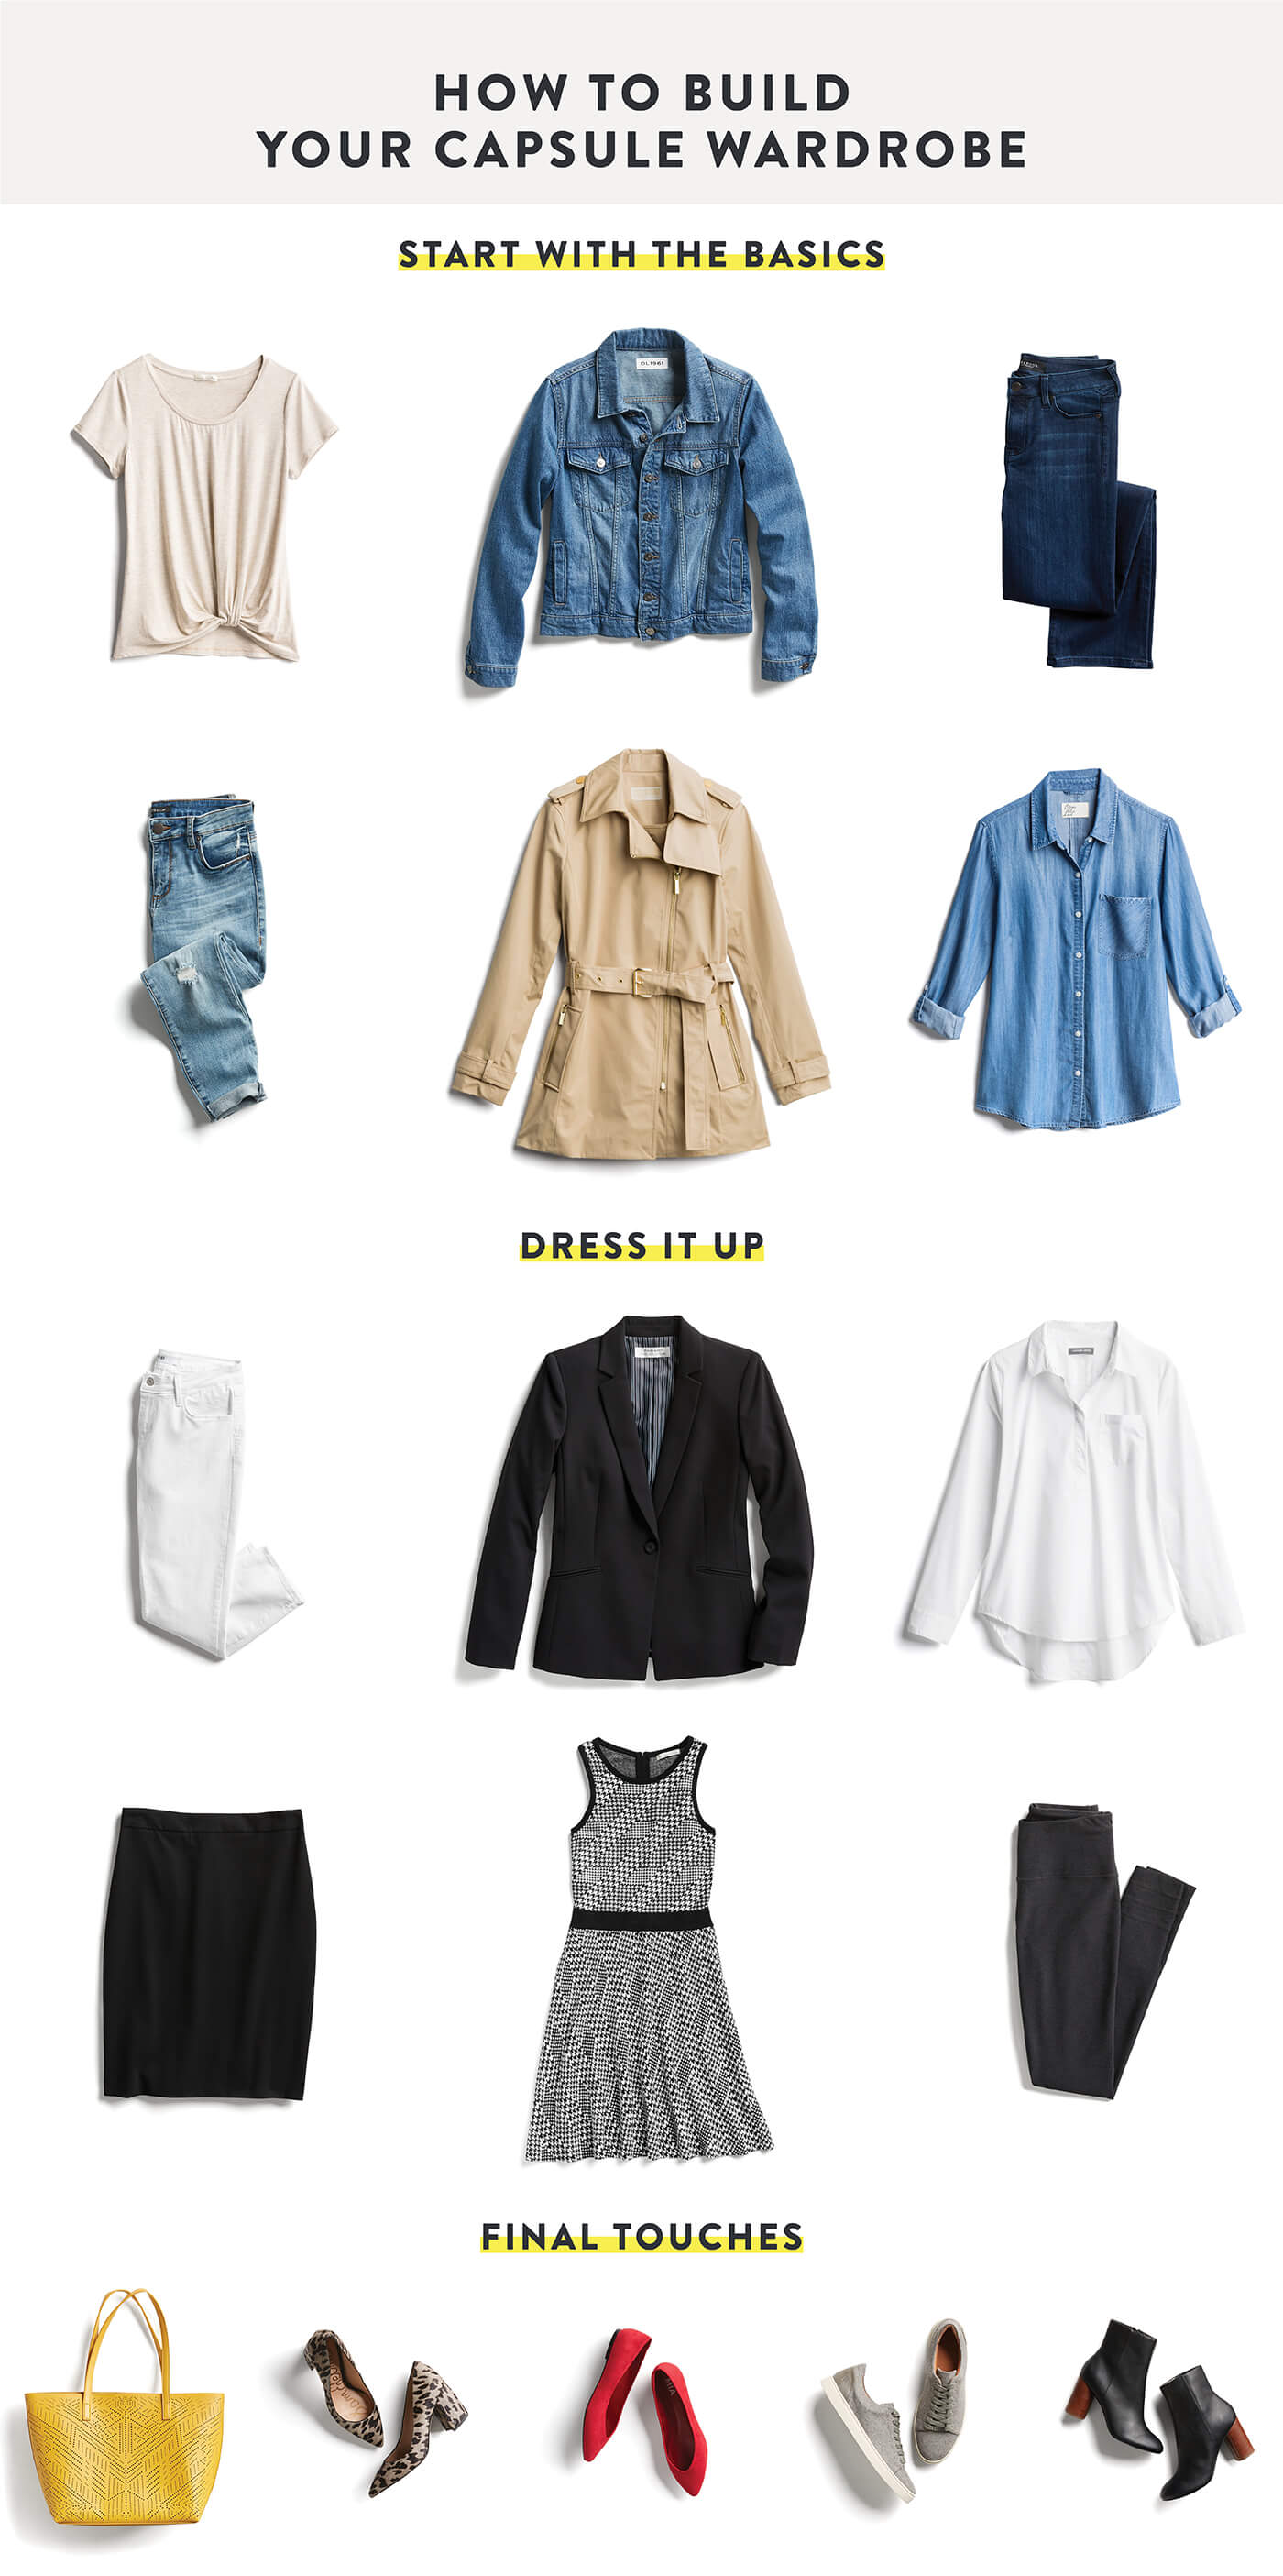 Capsule Wardrobe: WATCH: What's A Capsule Wardrobe? And, How Do You Build